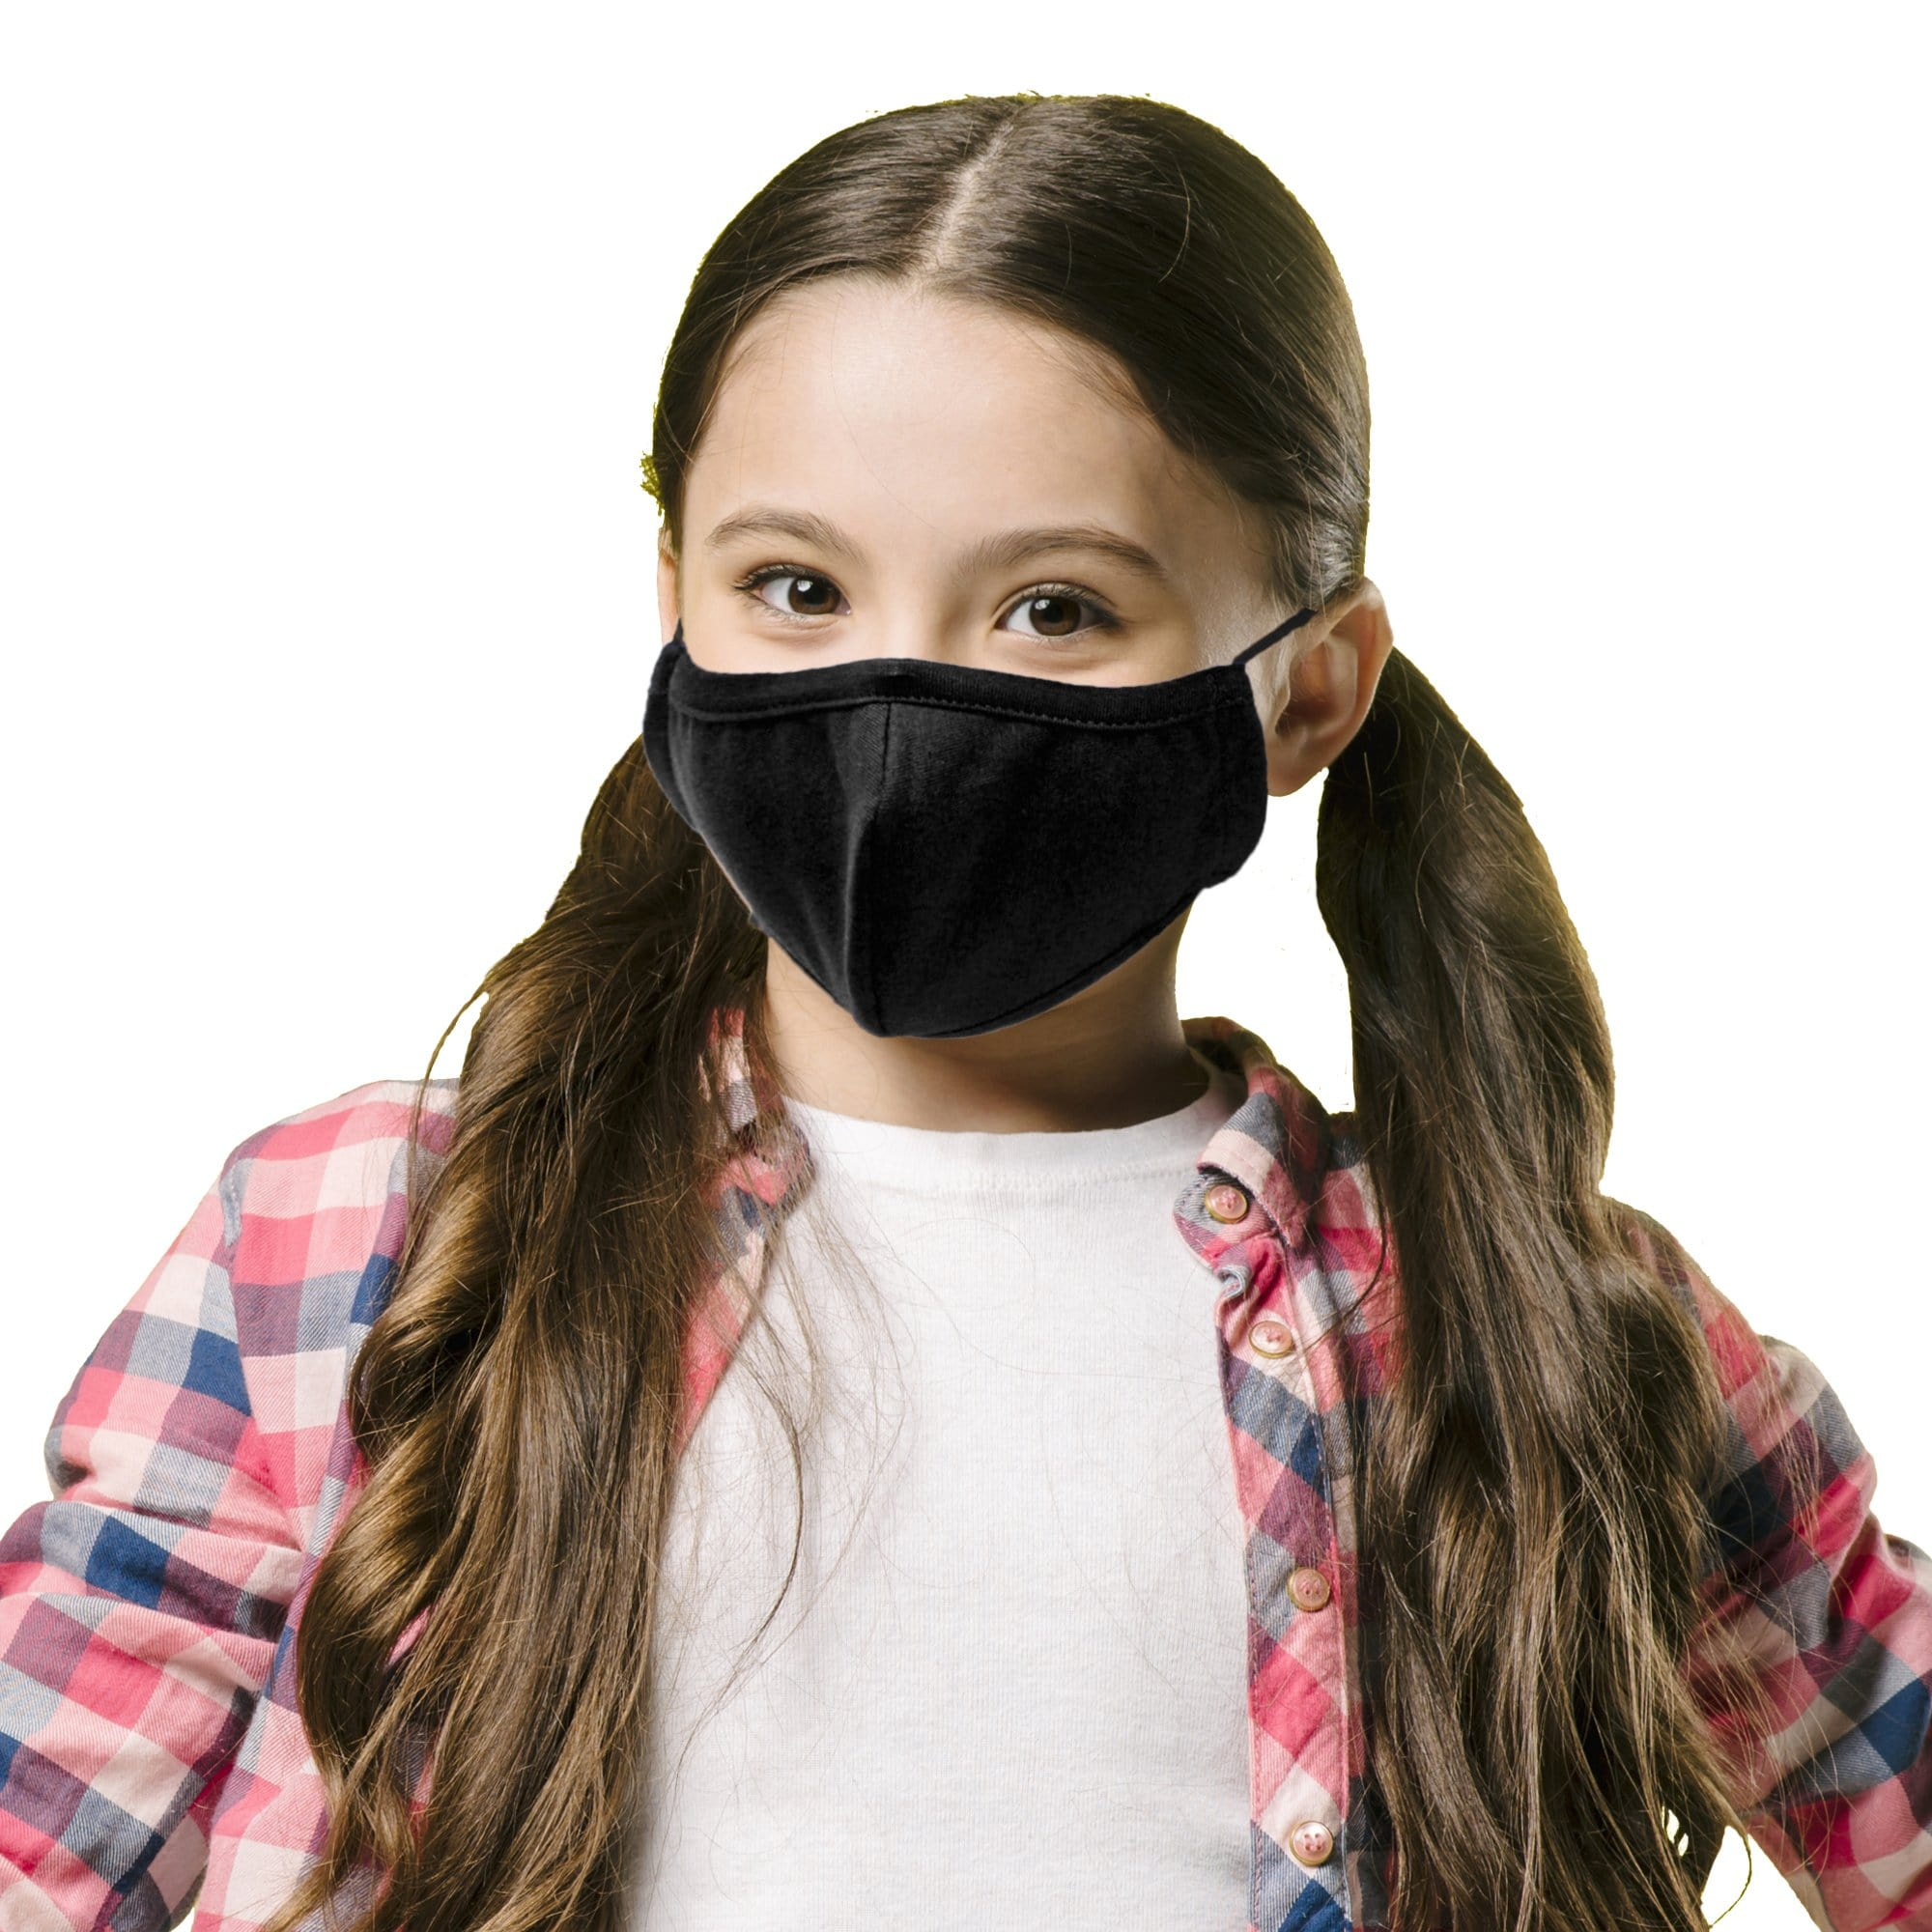 Kids Reusable Face Mask, 3-Layer, Black - Ready First Aid